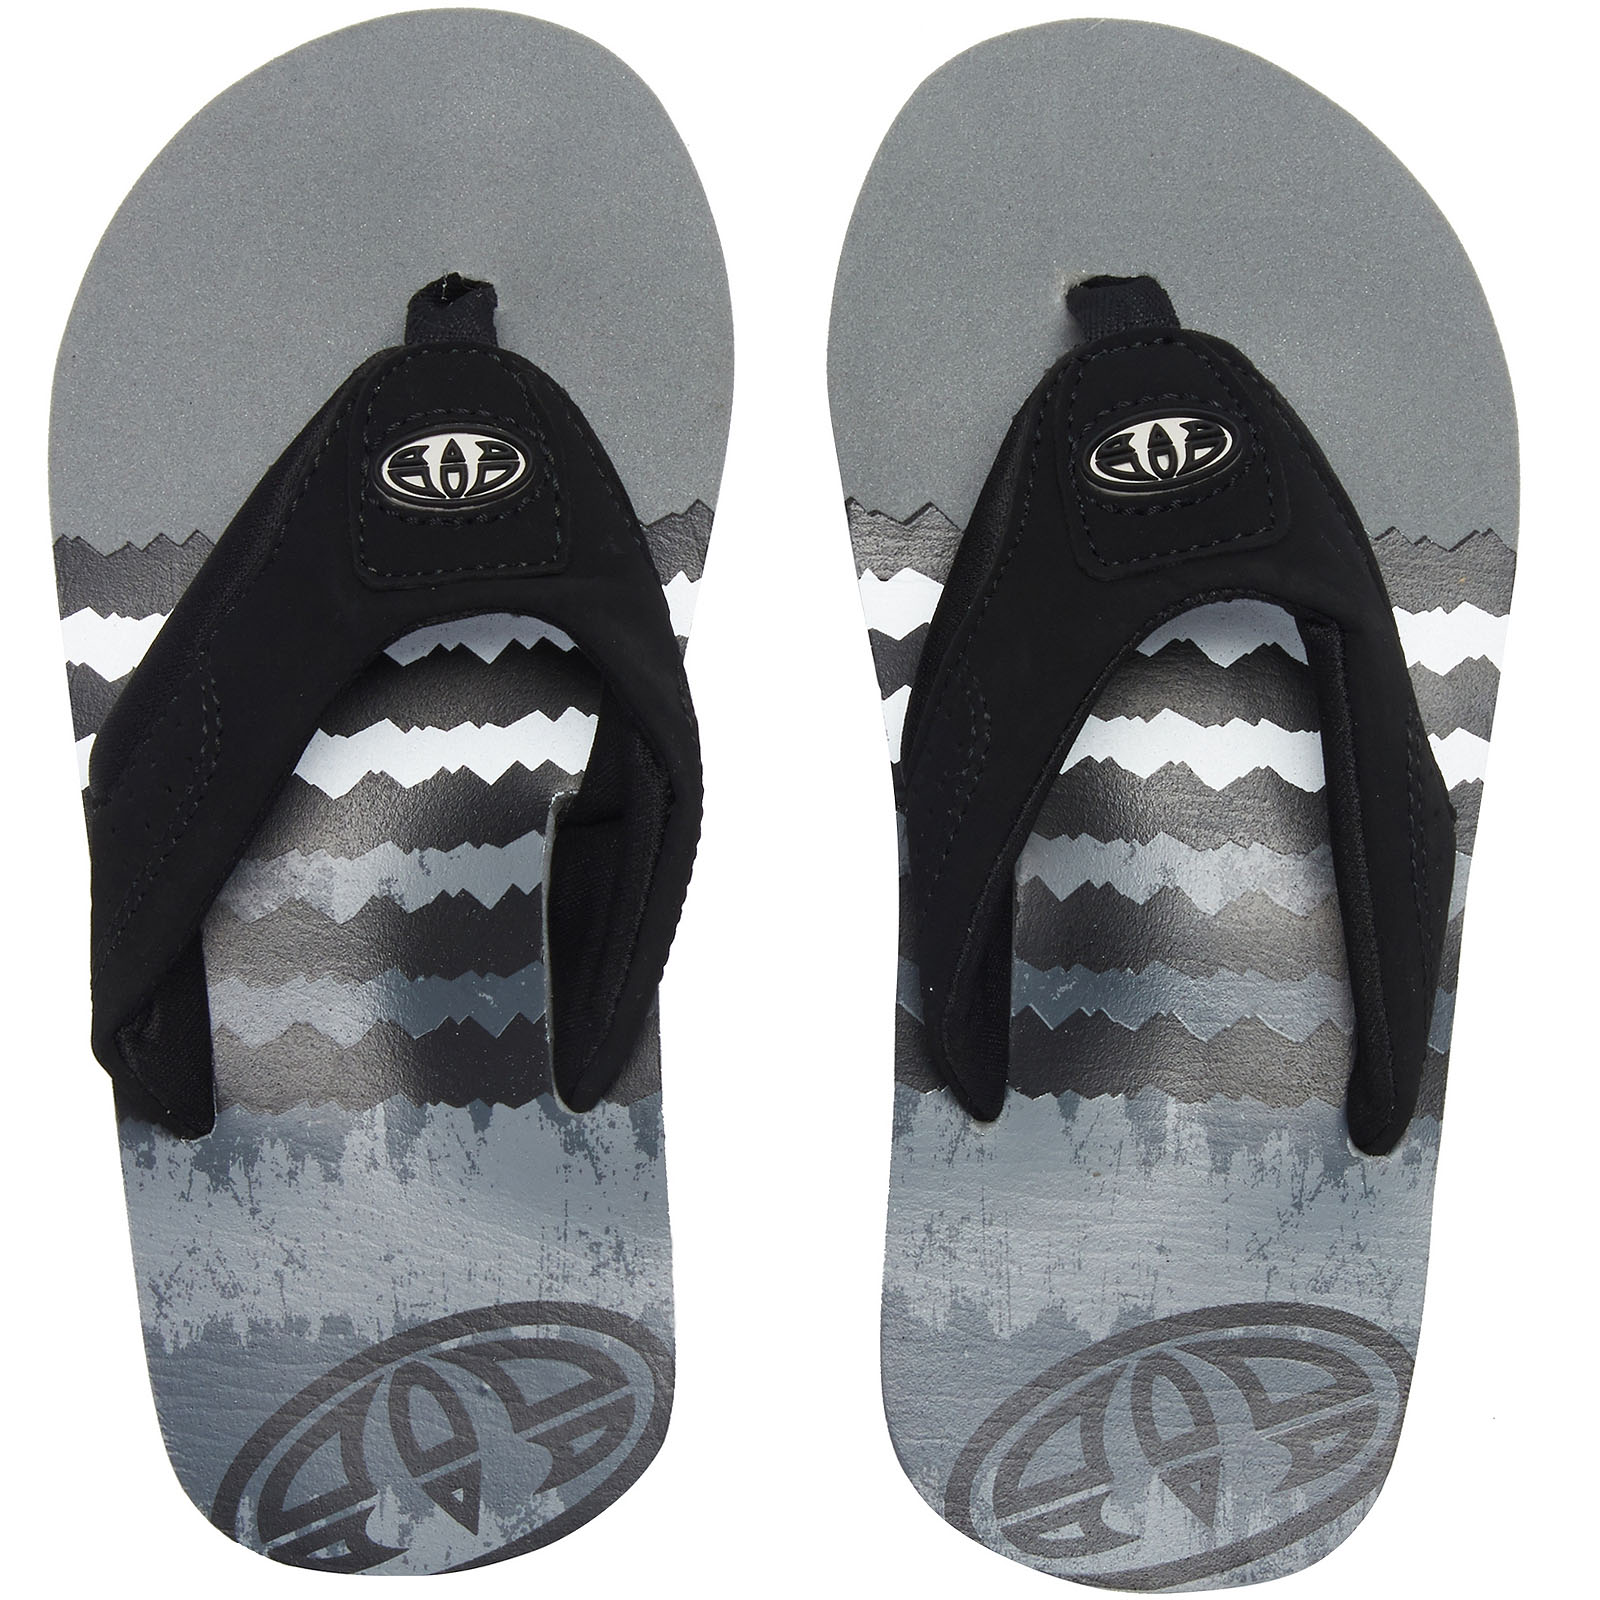 c3a69c37984f Animal Boys Jekyl Logo Slip on Beach Holiday Summer Thongs Sandals Flip  Flops 3 Black. About this product. Picture 1 of 3  Picture 2 of 3 ...